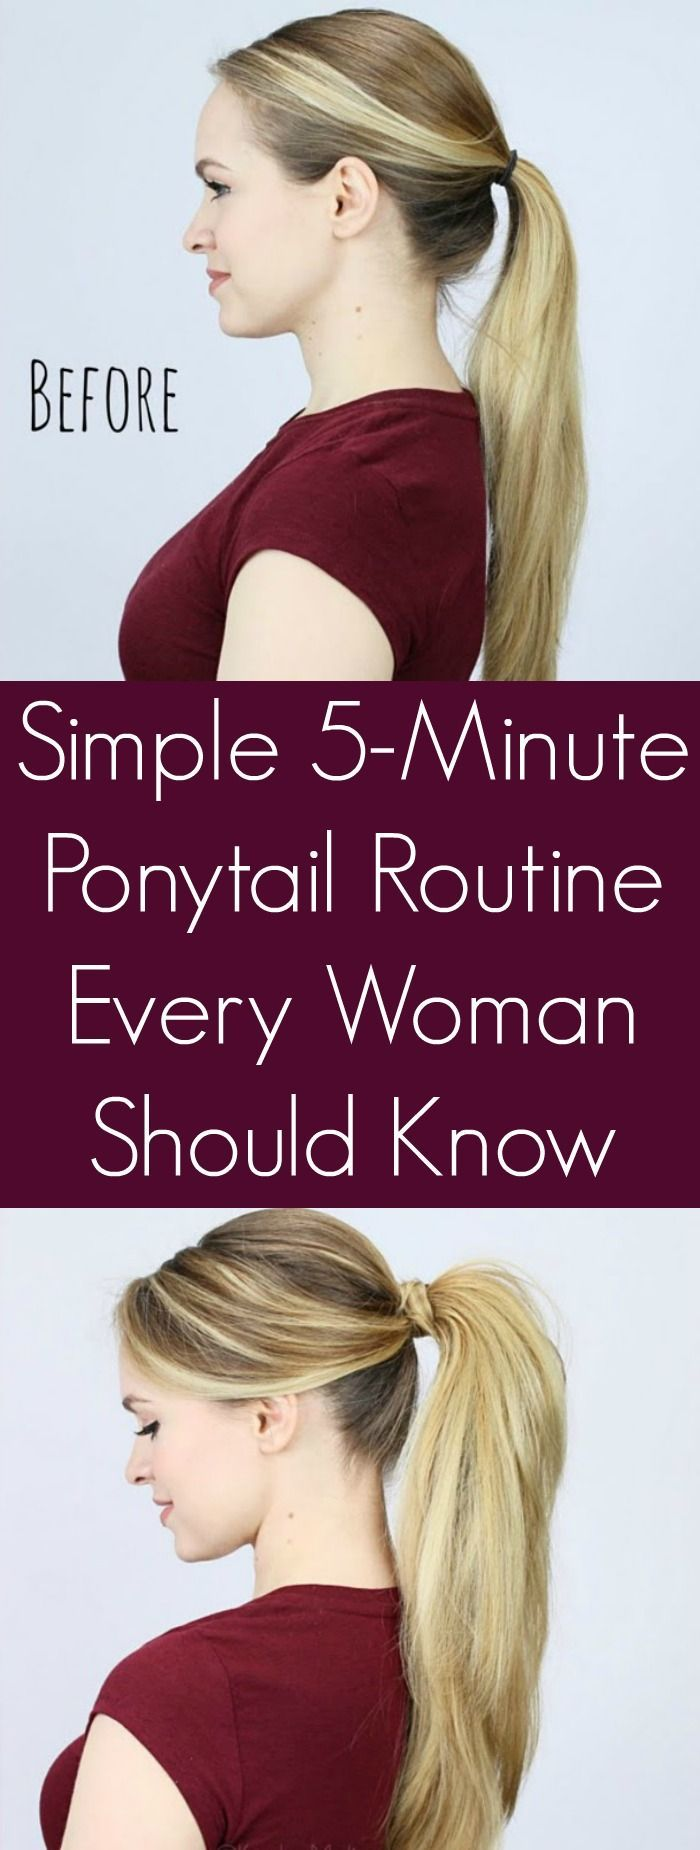 Simple 5-Minute Ponytail Routine Every Woman Should Know